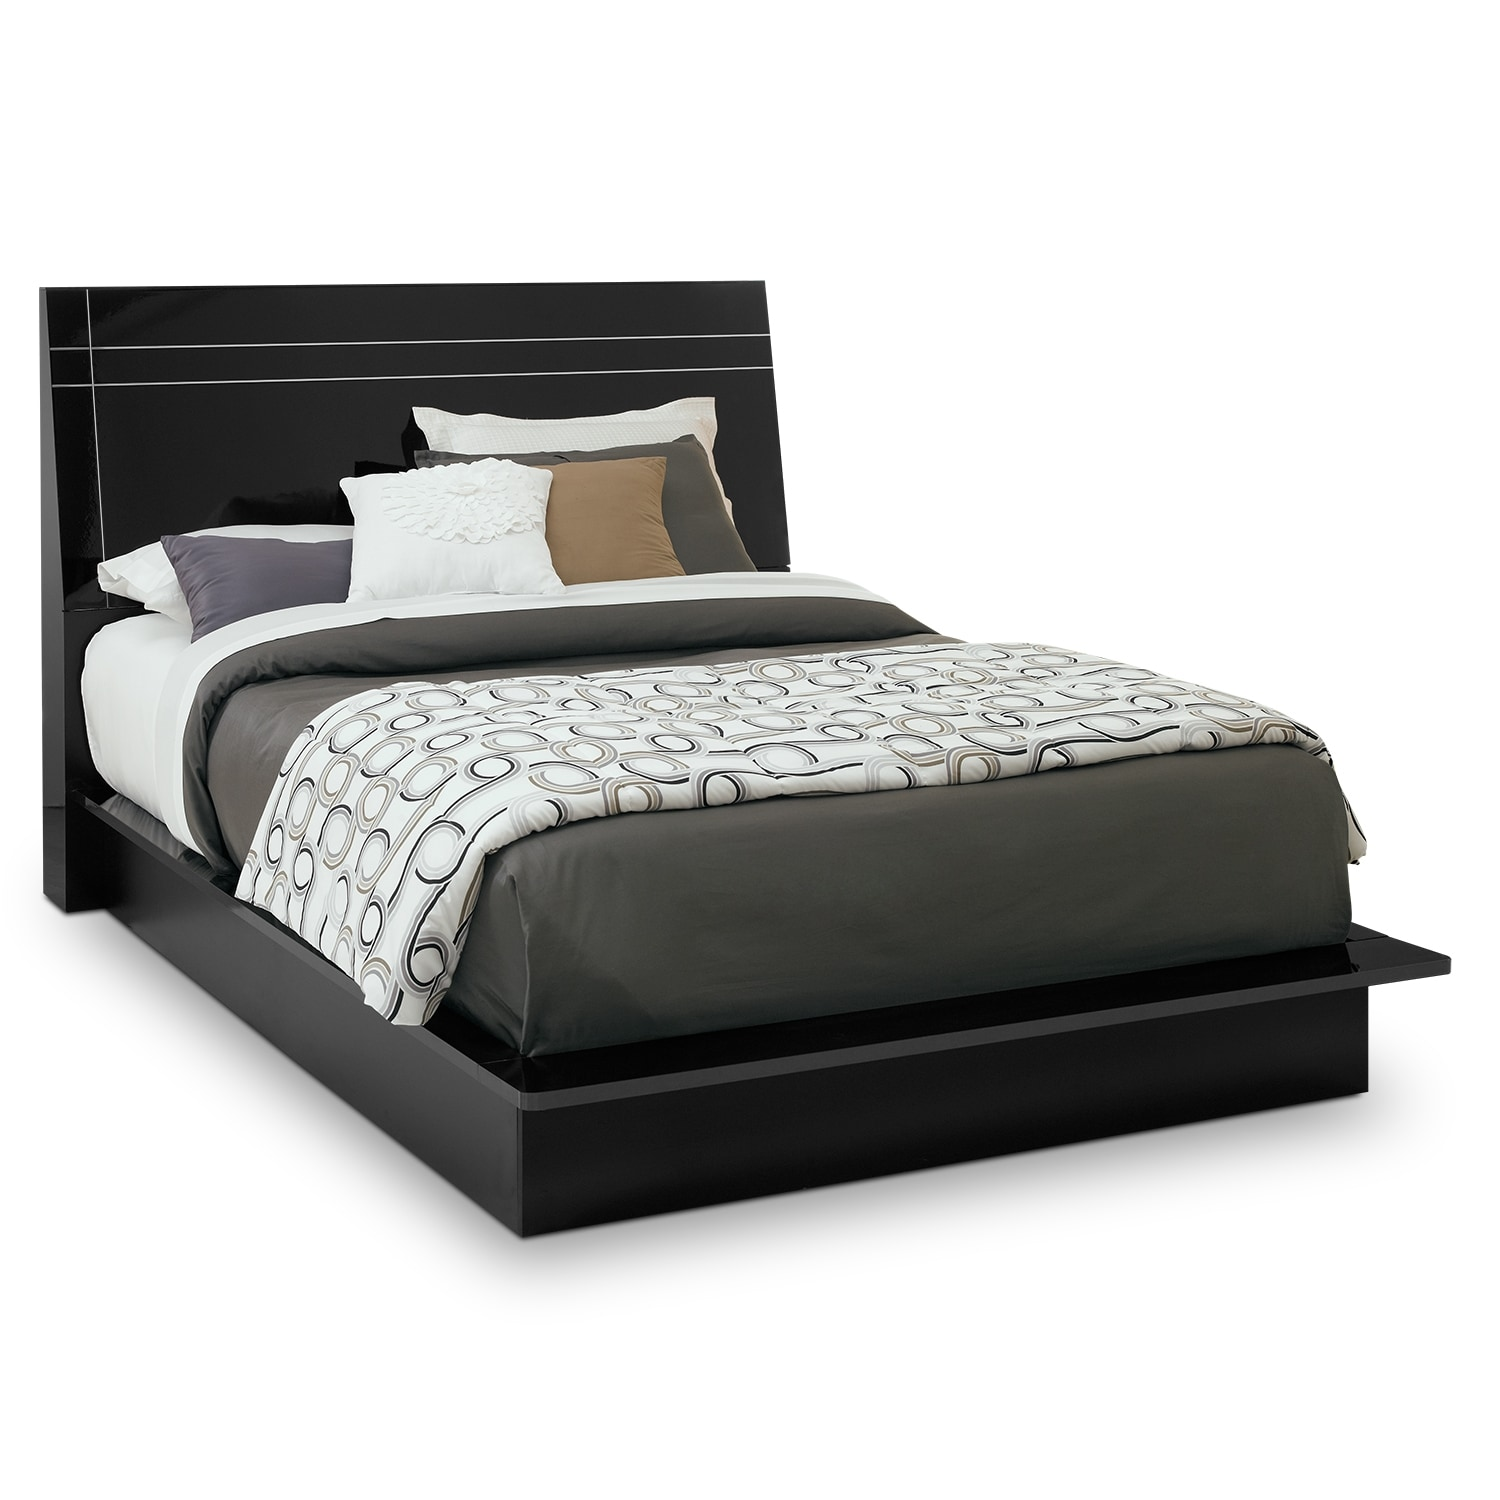 Dimora queen panel bed black american signature furniture for Bedroom furniture beds